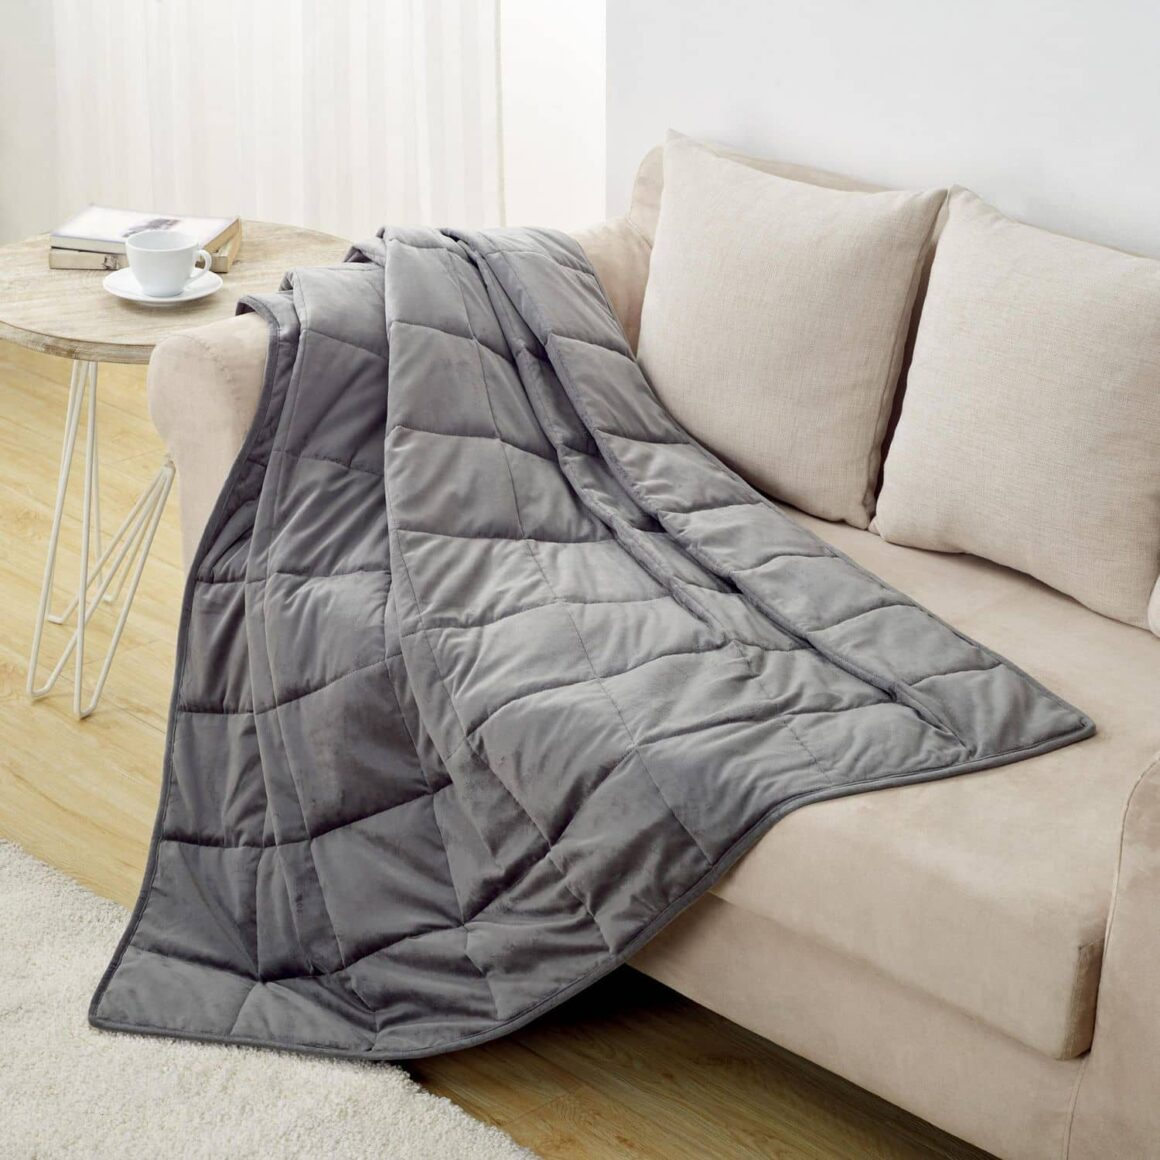 black friday deals 2020 weighted blanket